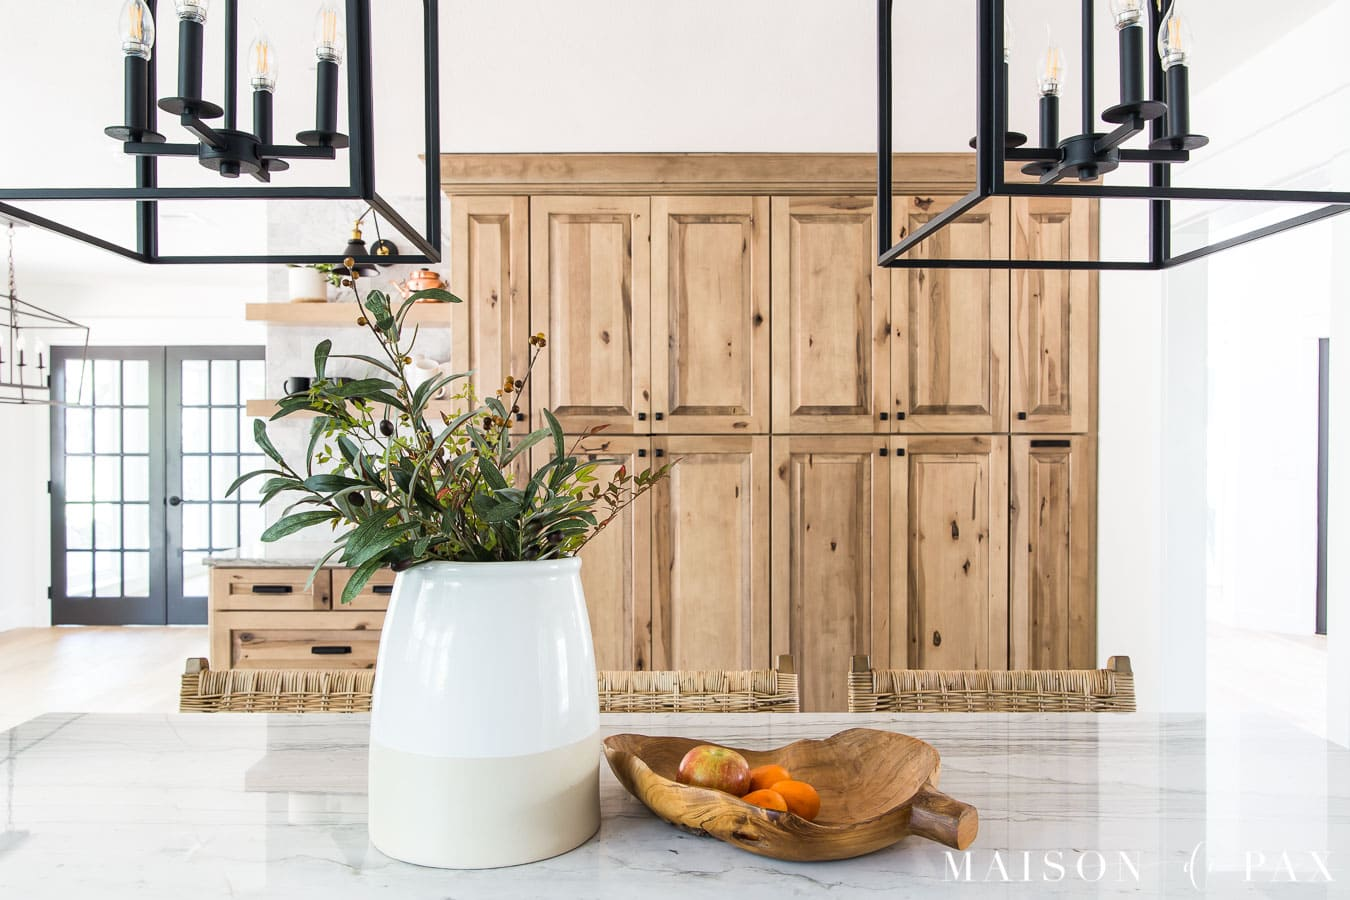 rustic natural wood cabinets in modern kitchen with quartzite countertops